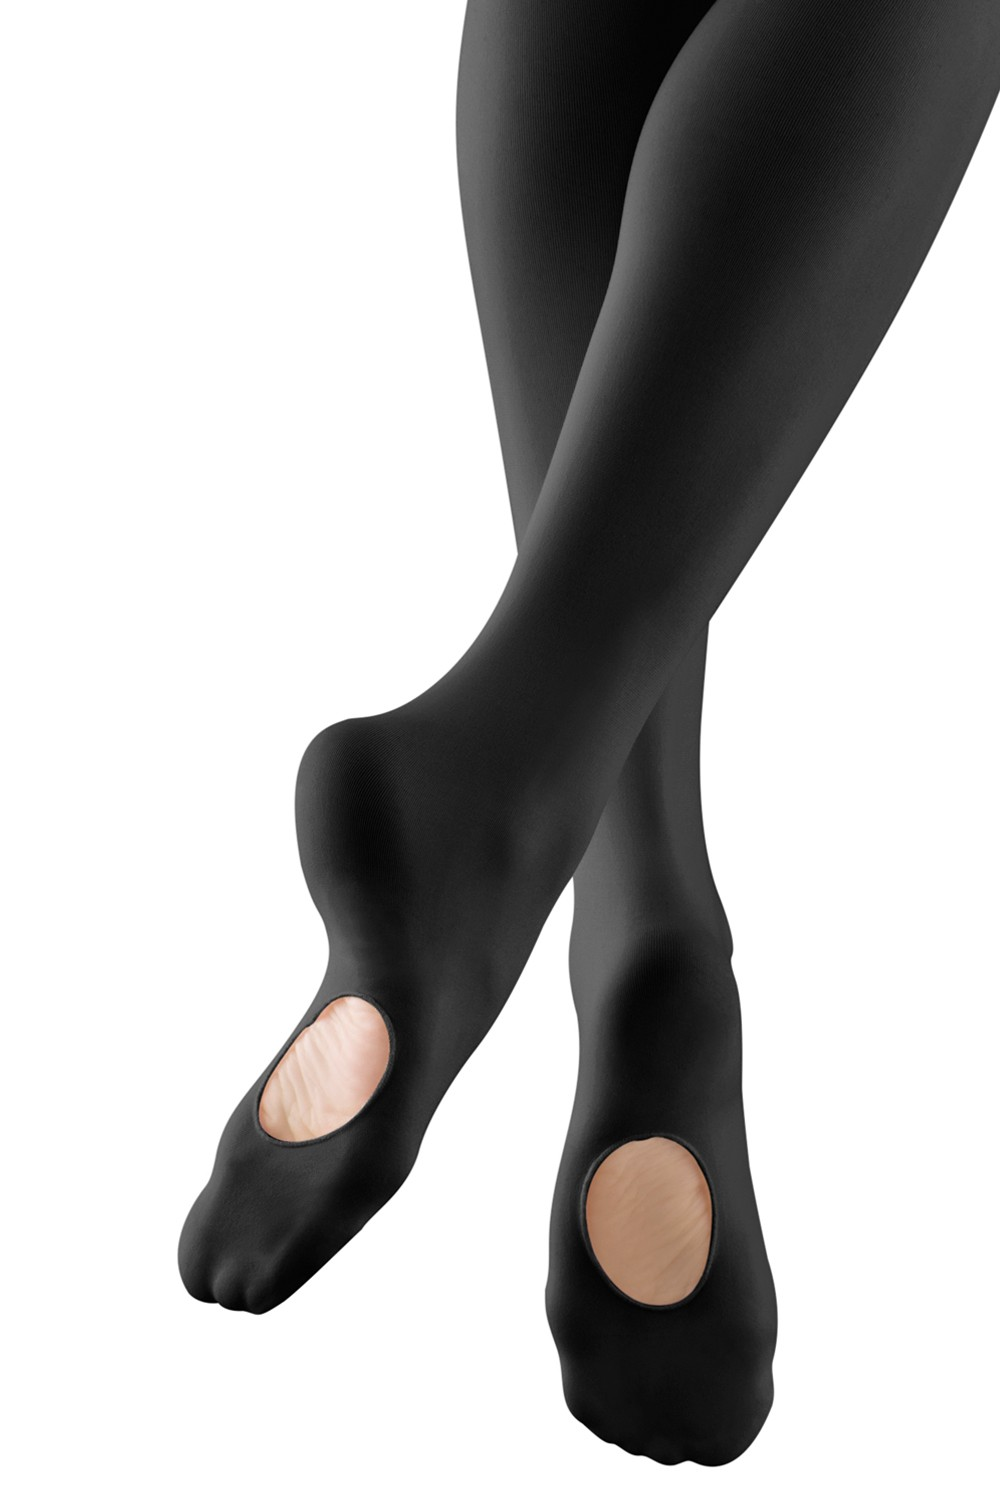 Collant Convertibili Donna Women's Dance Tights